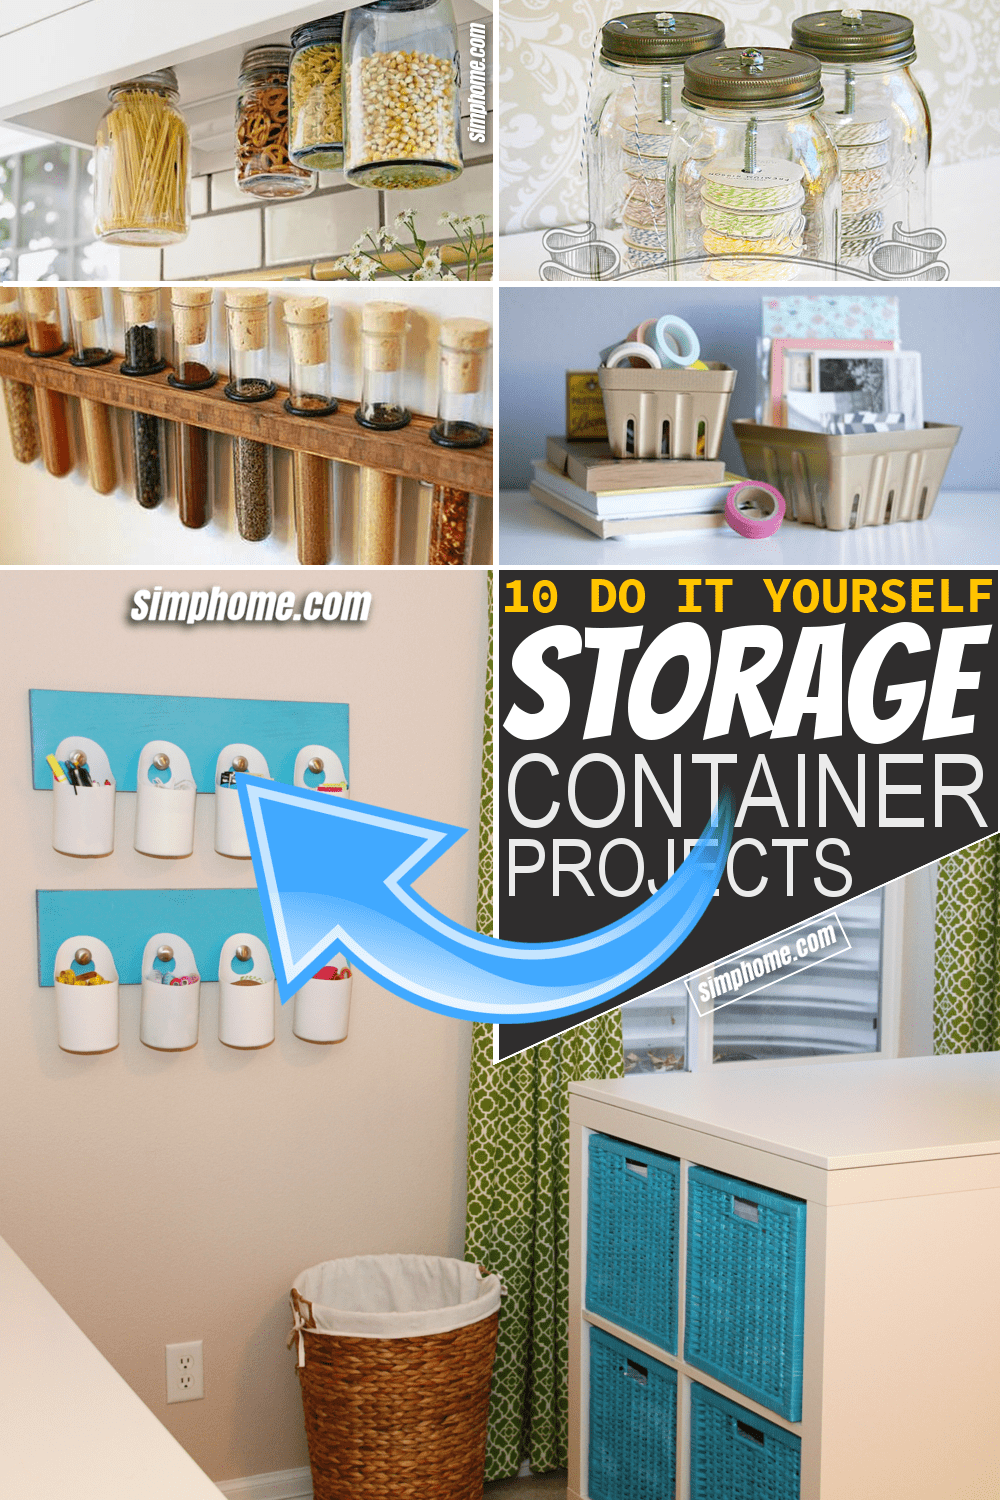 Simphome.com 10 DIY Storage Container Project Ideas Featured Pinterest Image